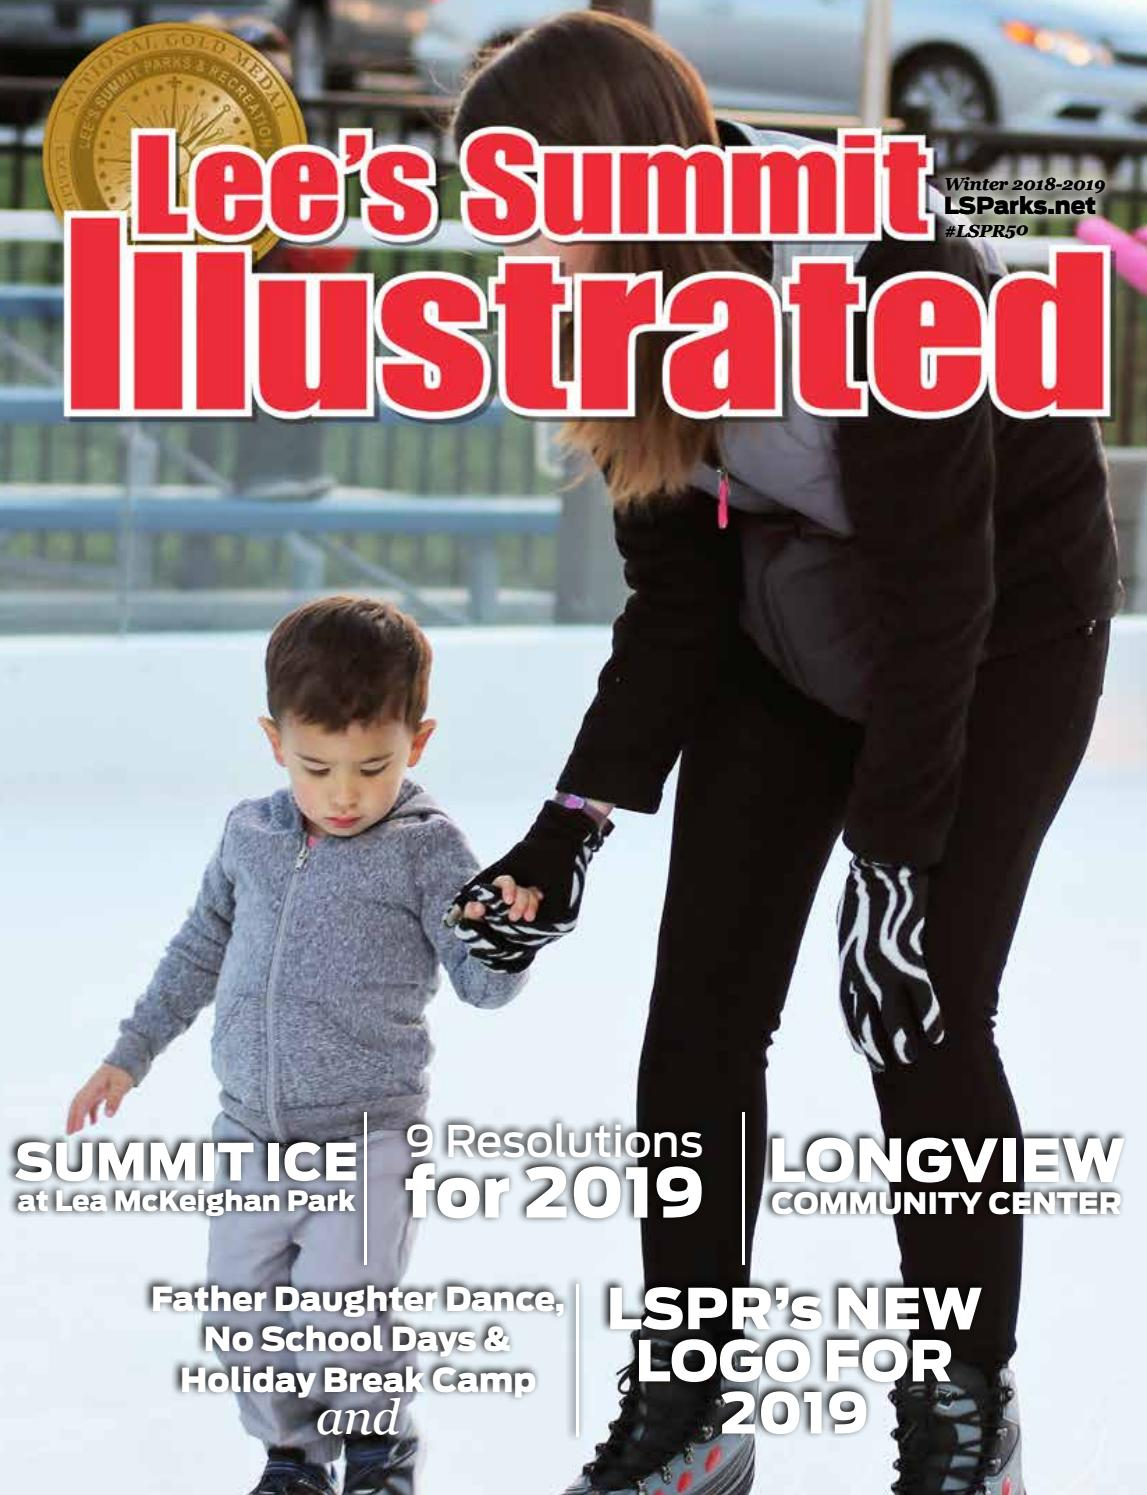 Lee's Summit Illustrated Winter 2018/2019 by City of Lees